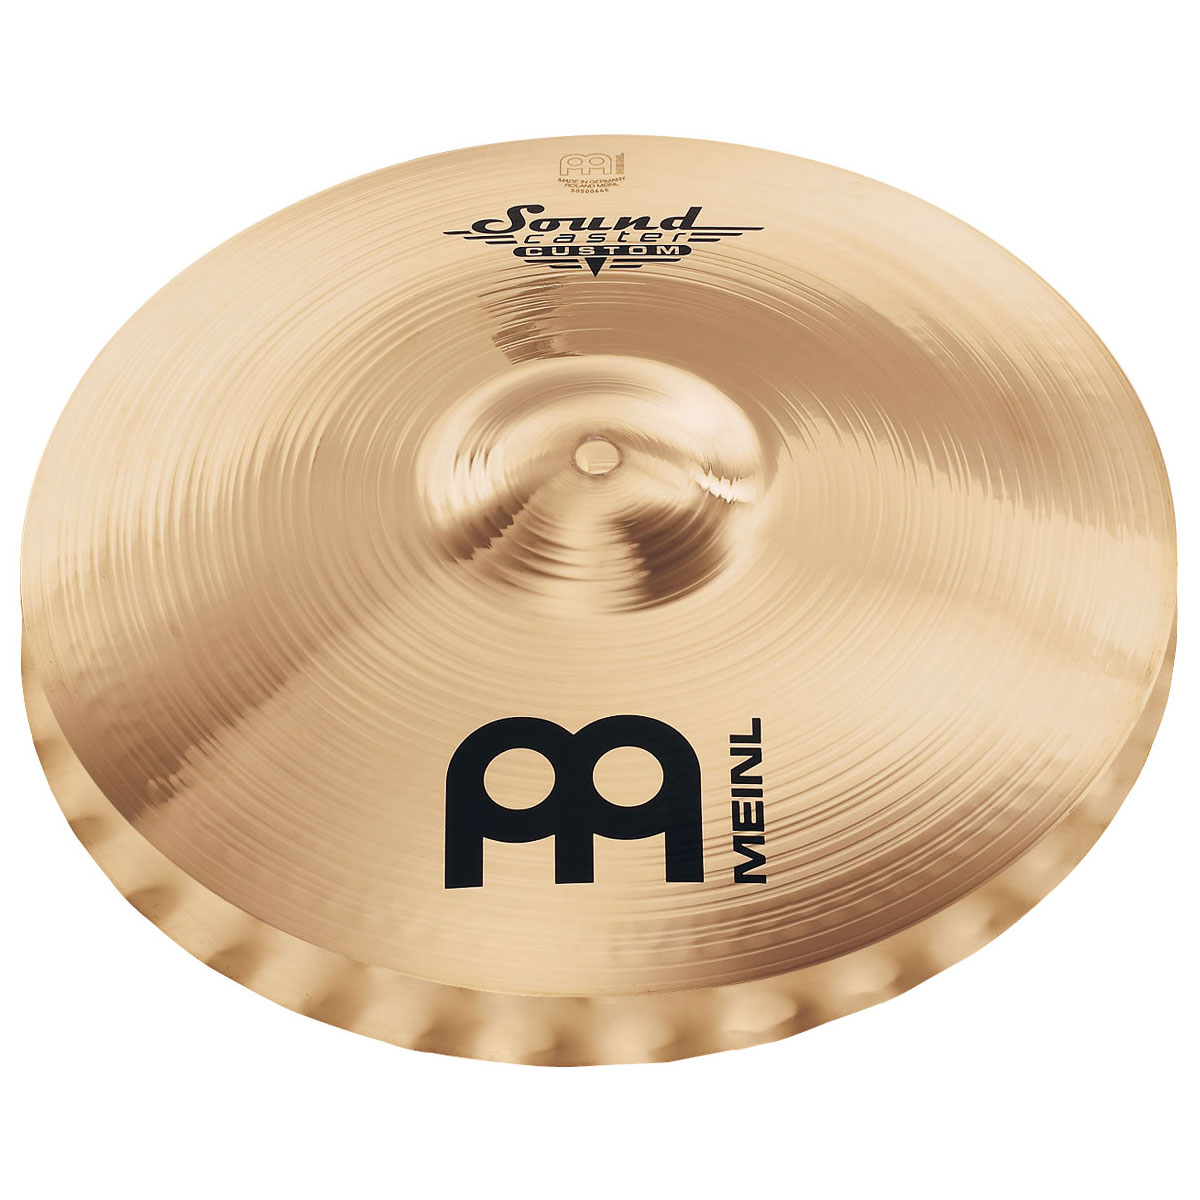 "Meinl 14"" Soundcaster Custom Powerful Soundwave Hi Hat Cymbals"